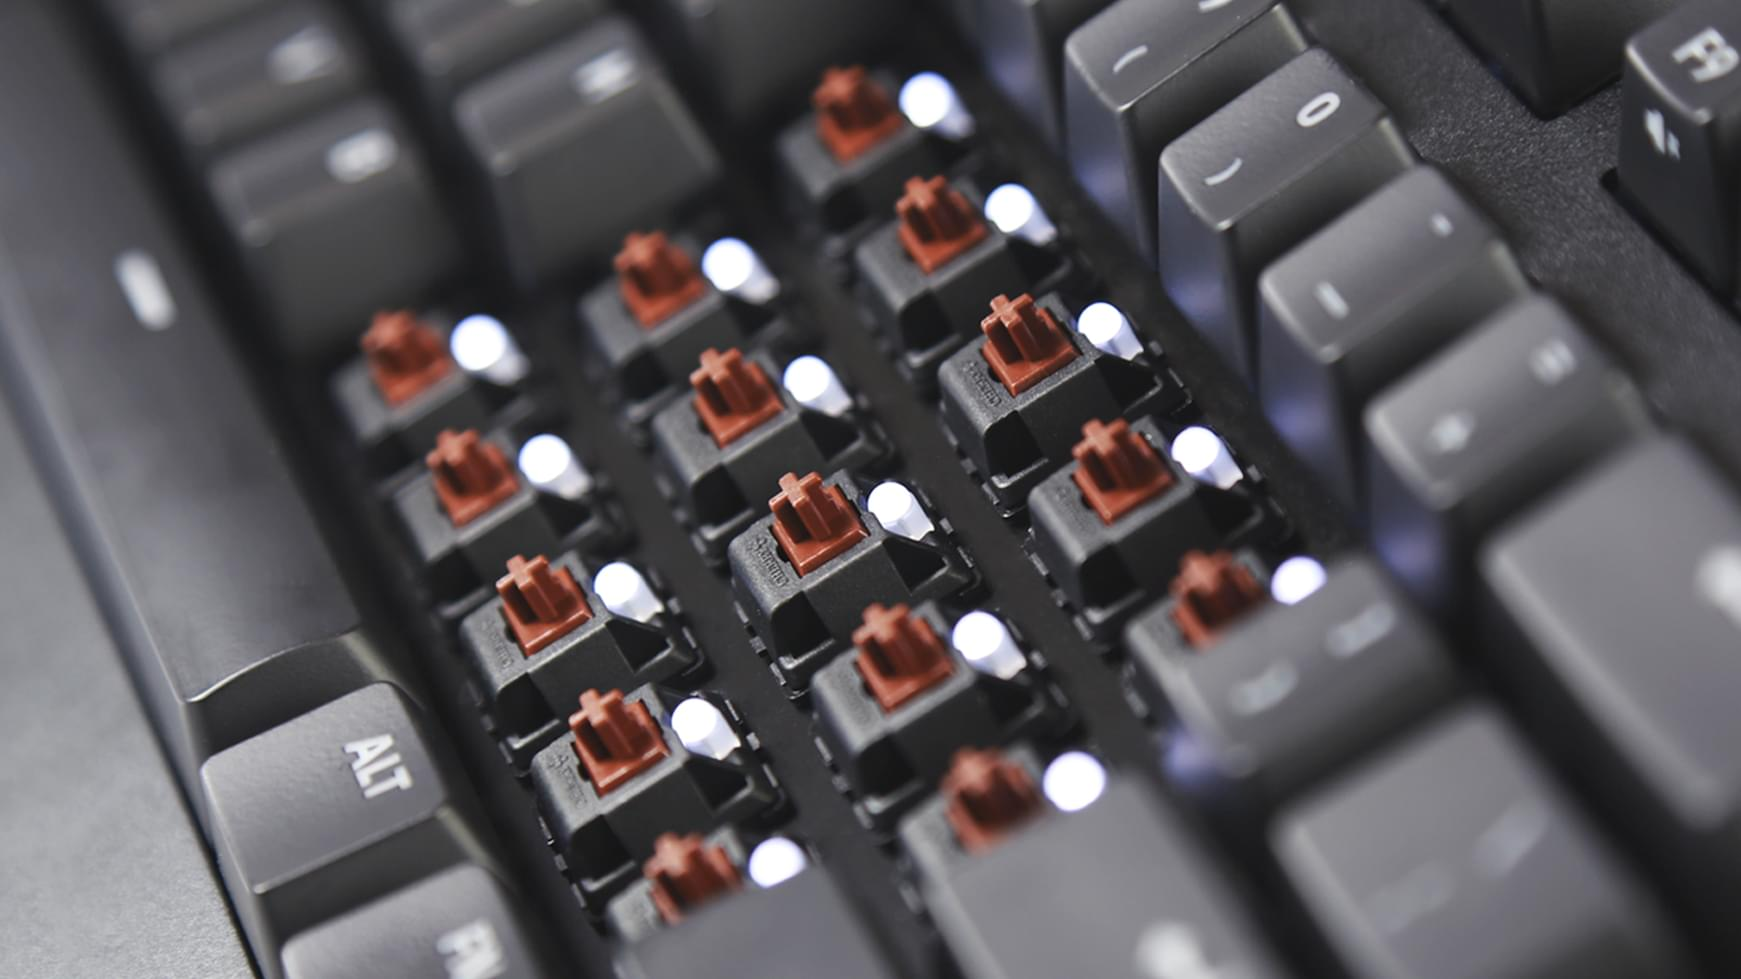 Cherry Brown LED mechanical switches